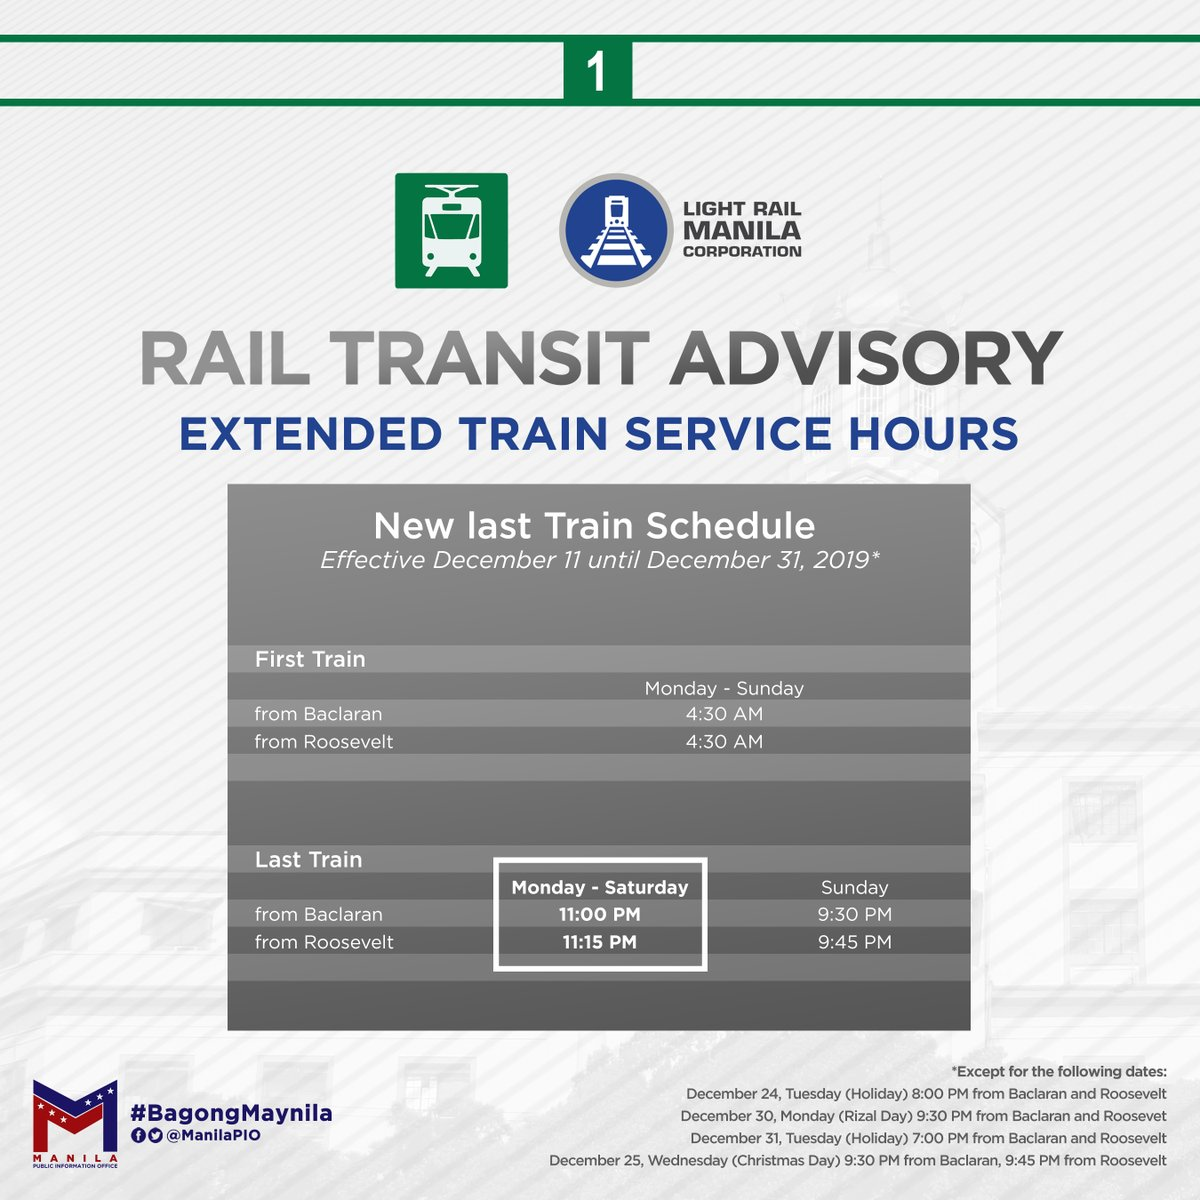 PUBLIC ADVISORY: Here are the extended train service hours of the Light Rail Transit (LRT) Line 1. Please be advised. Thank you! #BagongMaynila